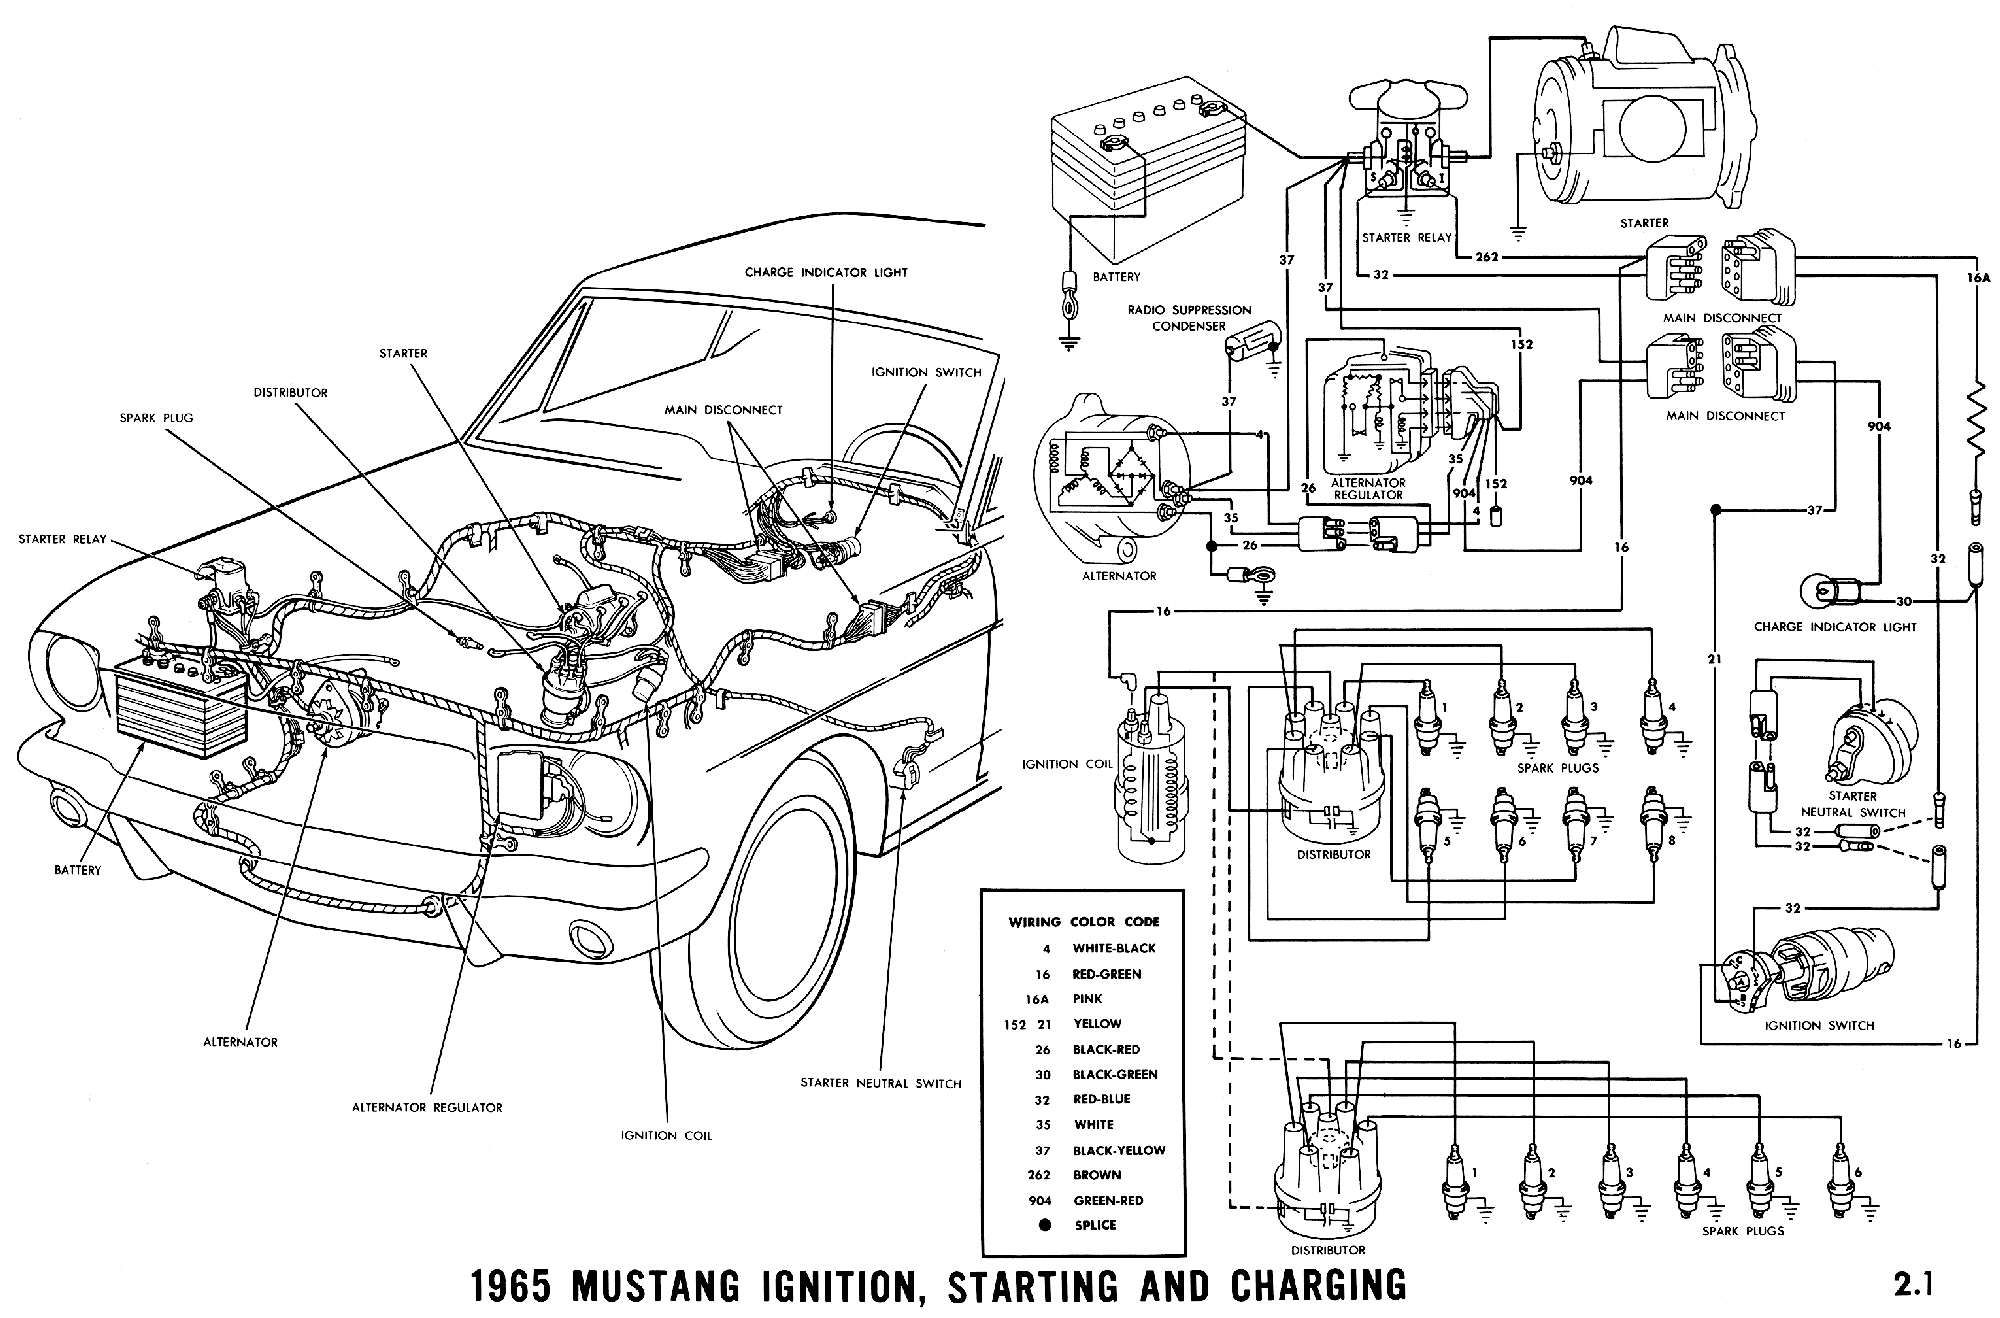 1965 mustang wiring diagrams average joe restoration classic mustang mustang parts 1966 ford